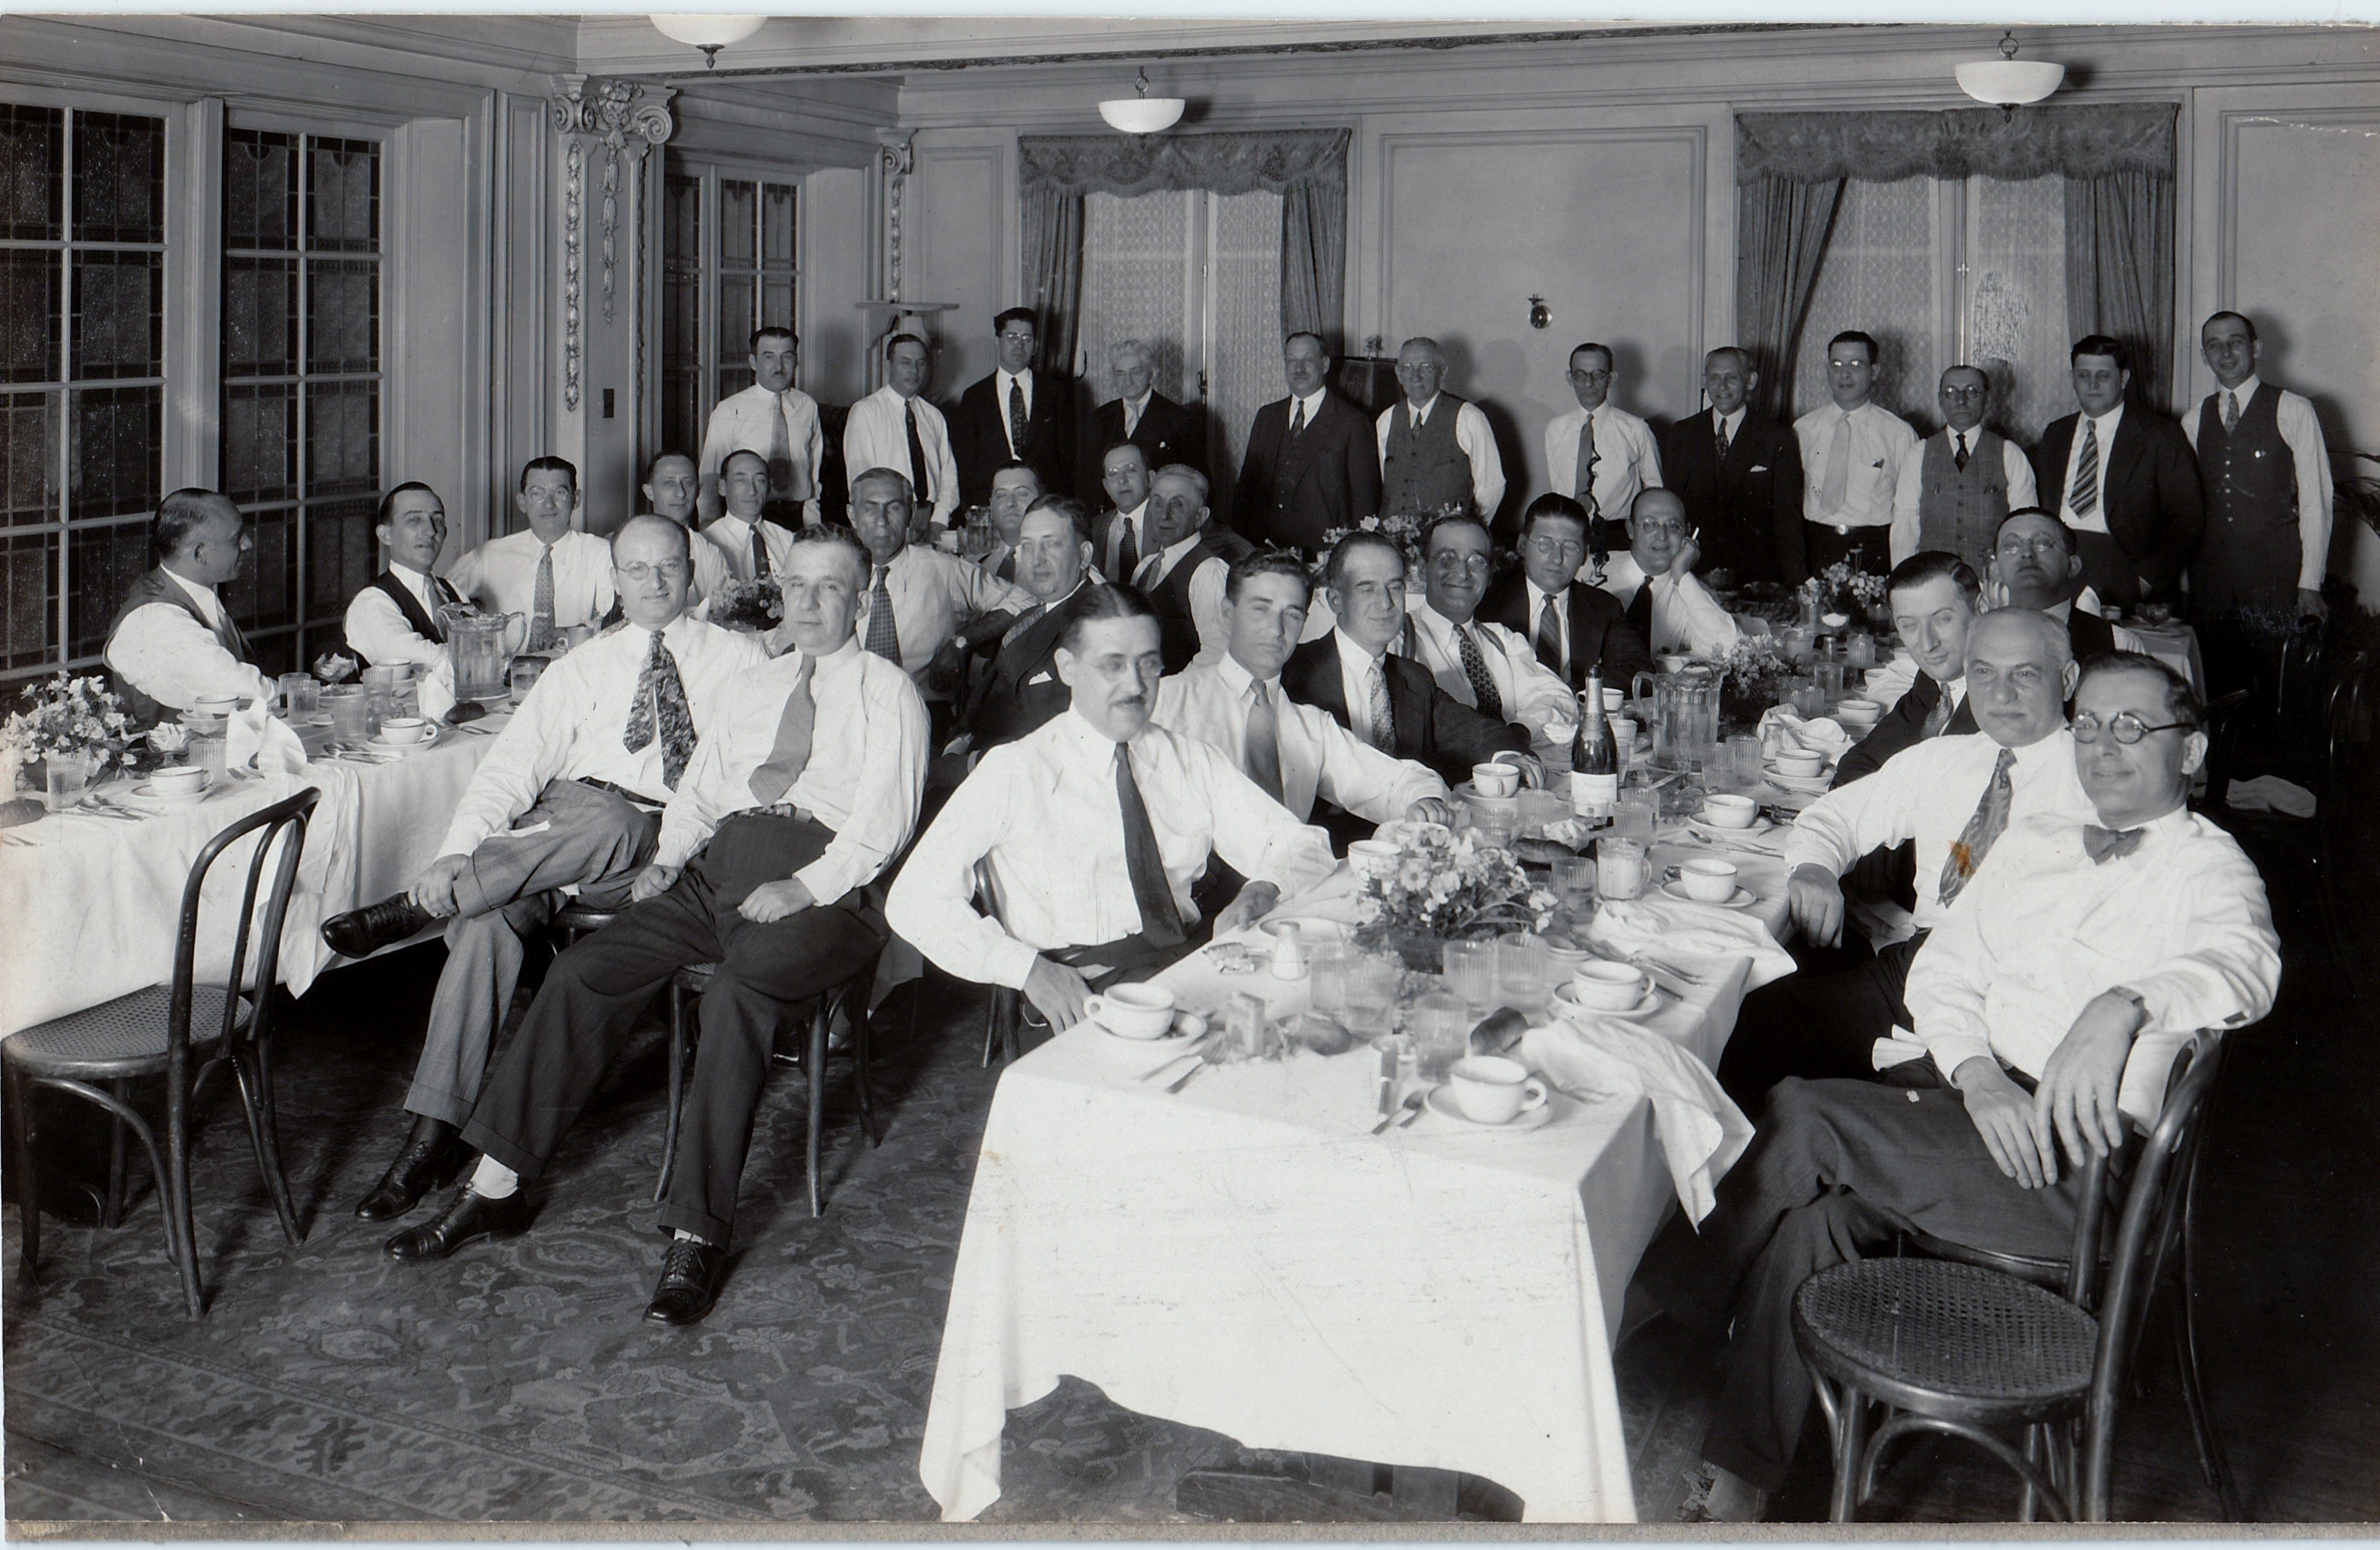 1931 Harmonie Club gathering Hotel Brunswick IDs page 91 in Jews of Lancaster